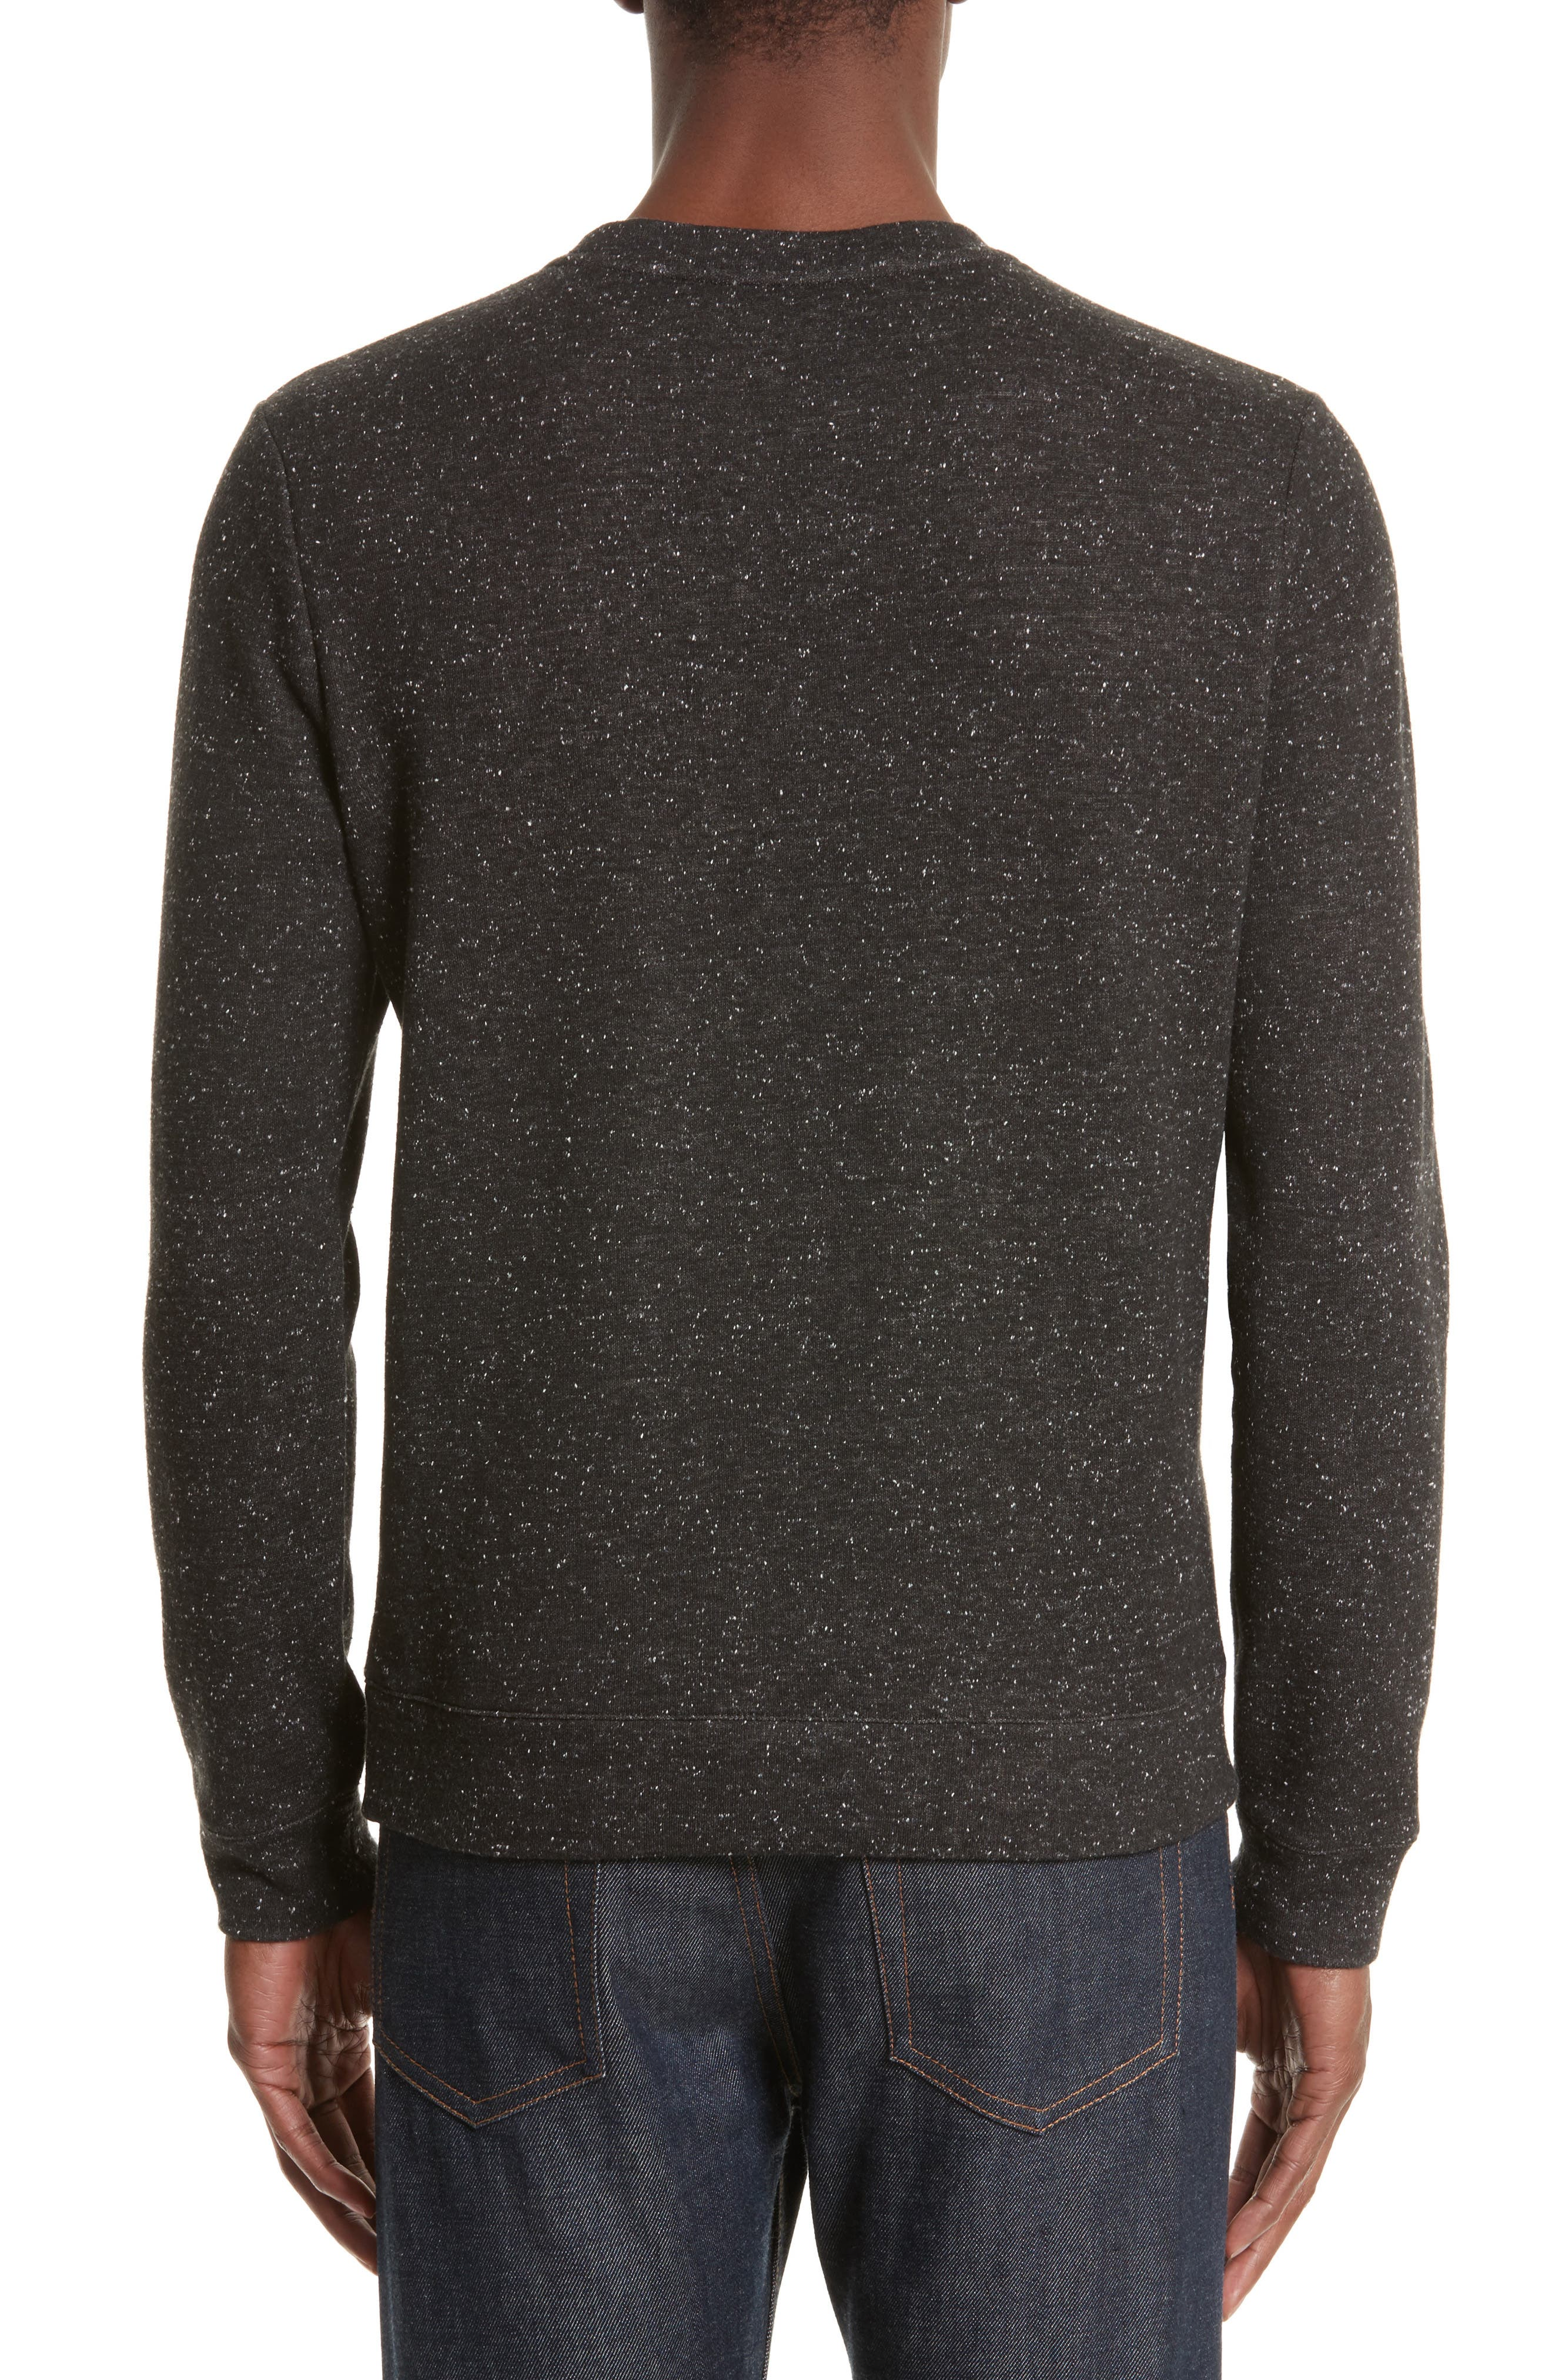 Speckle Sweat Track Sweater,                             Alternate thumbnail 2, color,                             065